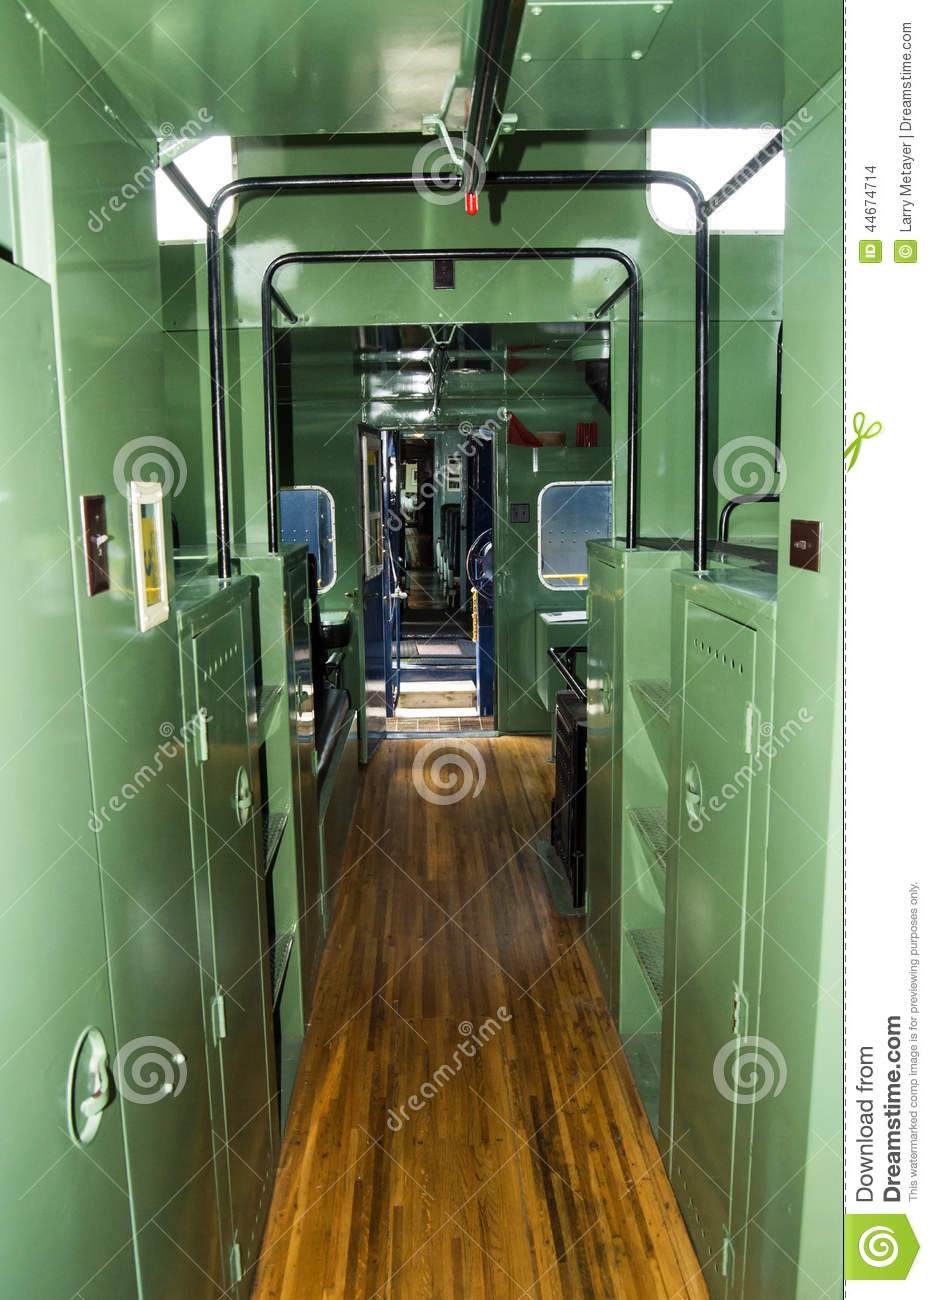 1968 C   O Caboose Interior 3168   Clifton Forge  Editorial Stock     Download 1968 C   O Caboose Interior 3168   Clifton Forge  Editorial Stock  Image